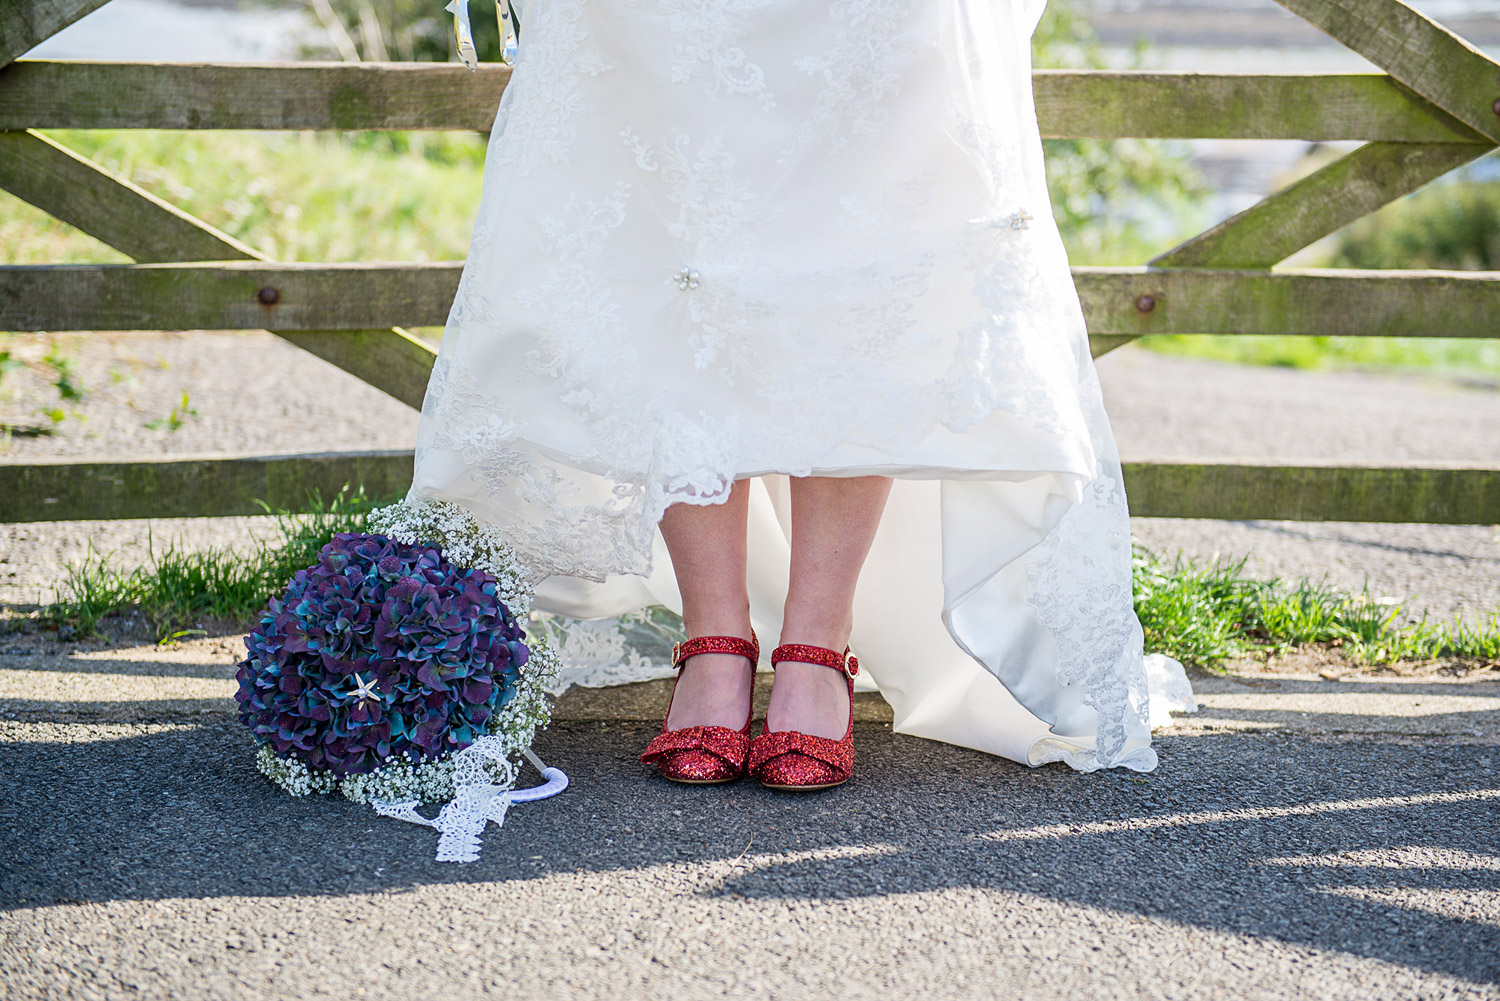 Copy of photo of vintage red wedding shoes and flowers